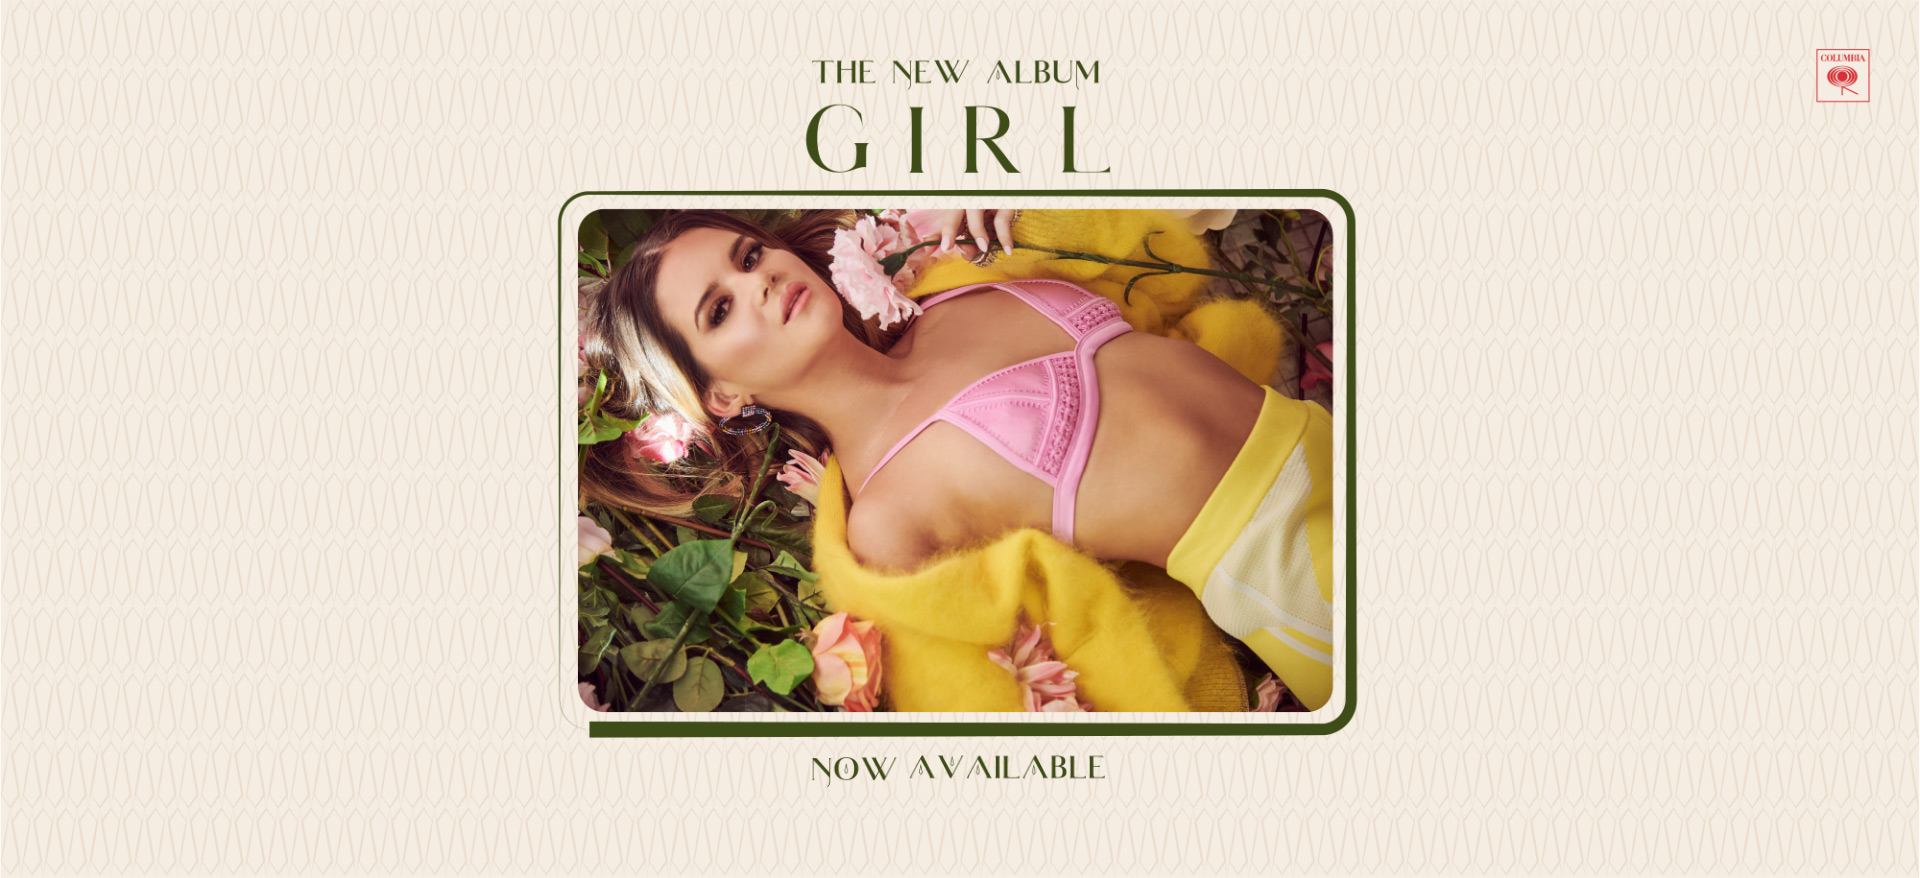 Order The New Album GIRL